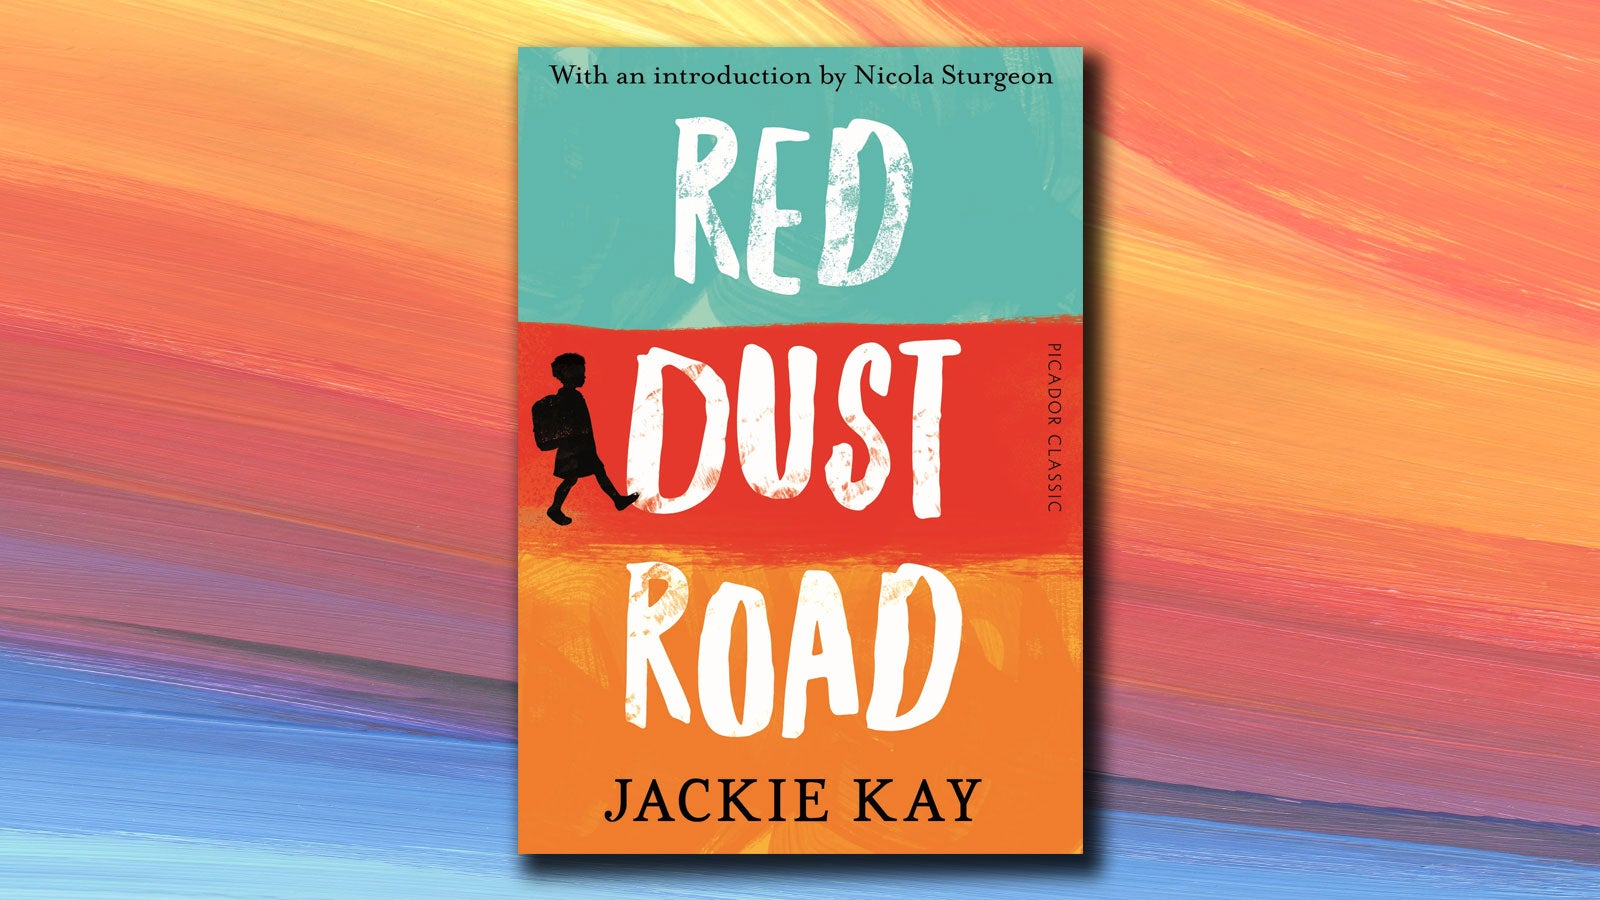 Red Dust Road jacket on a colourful background.